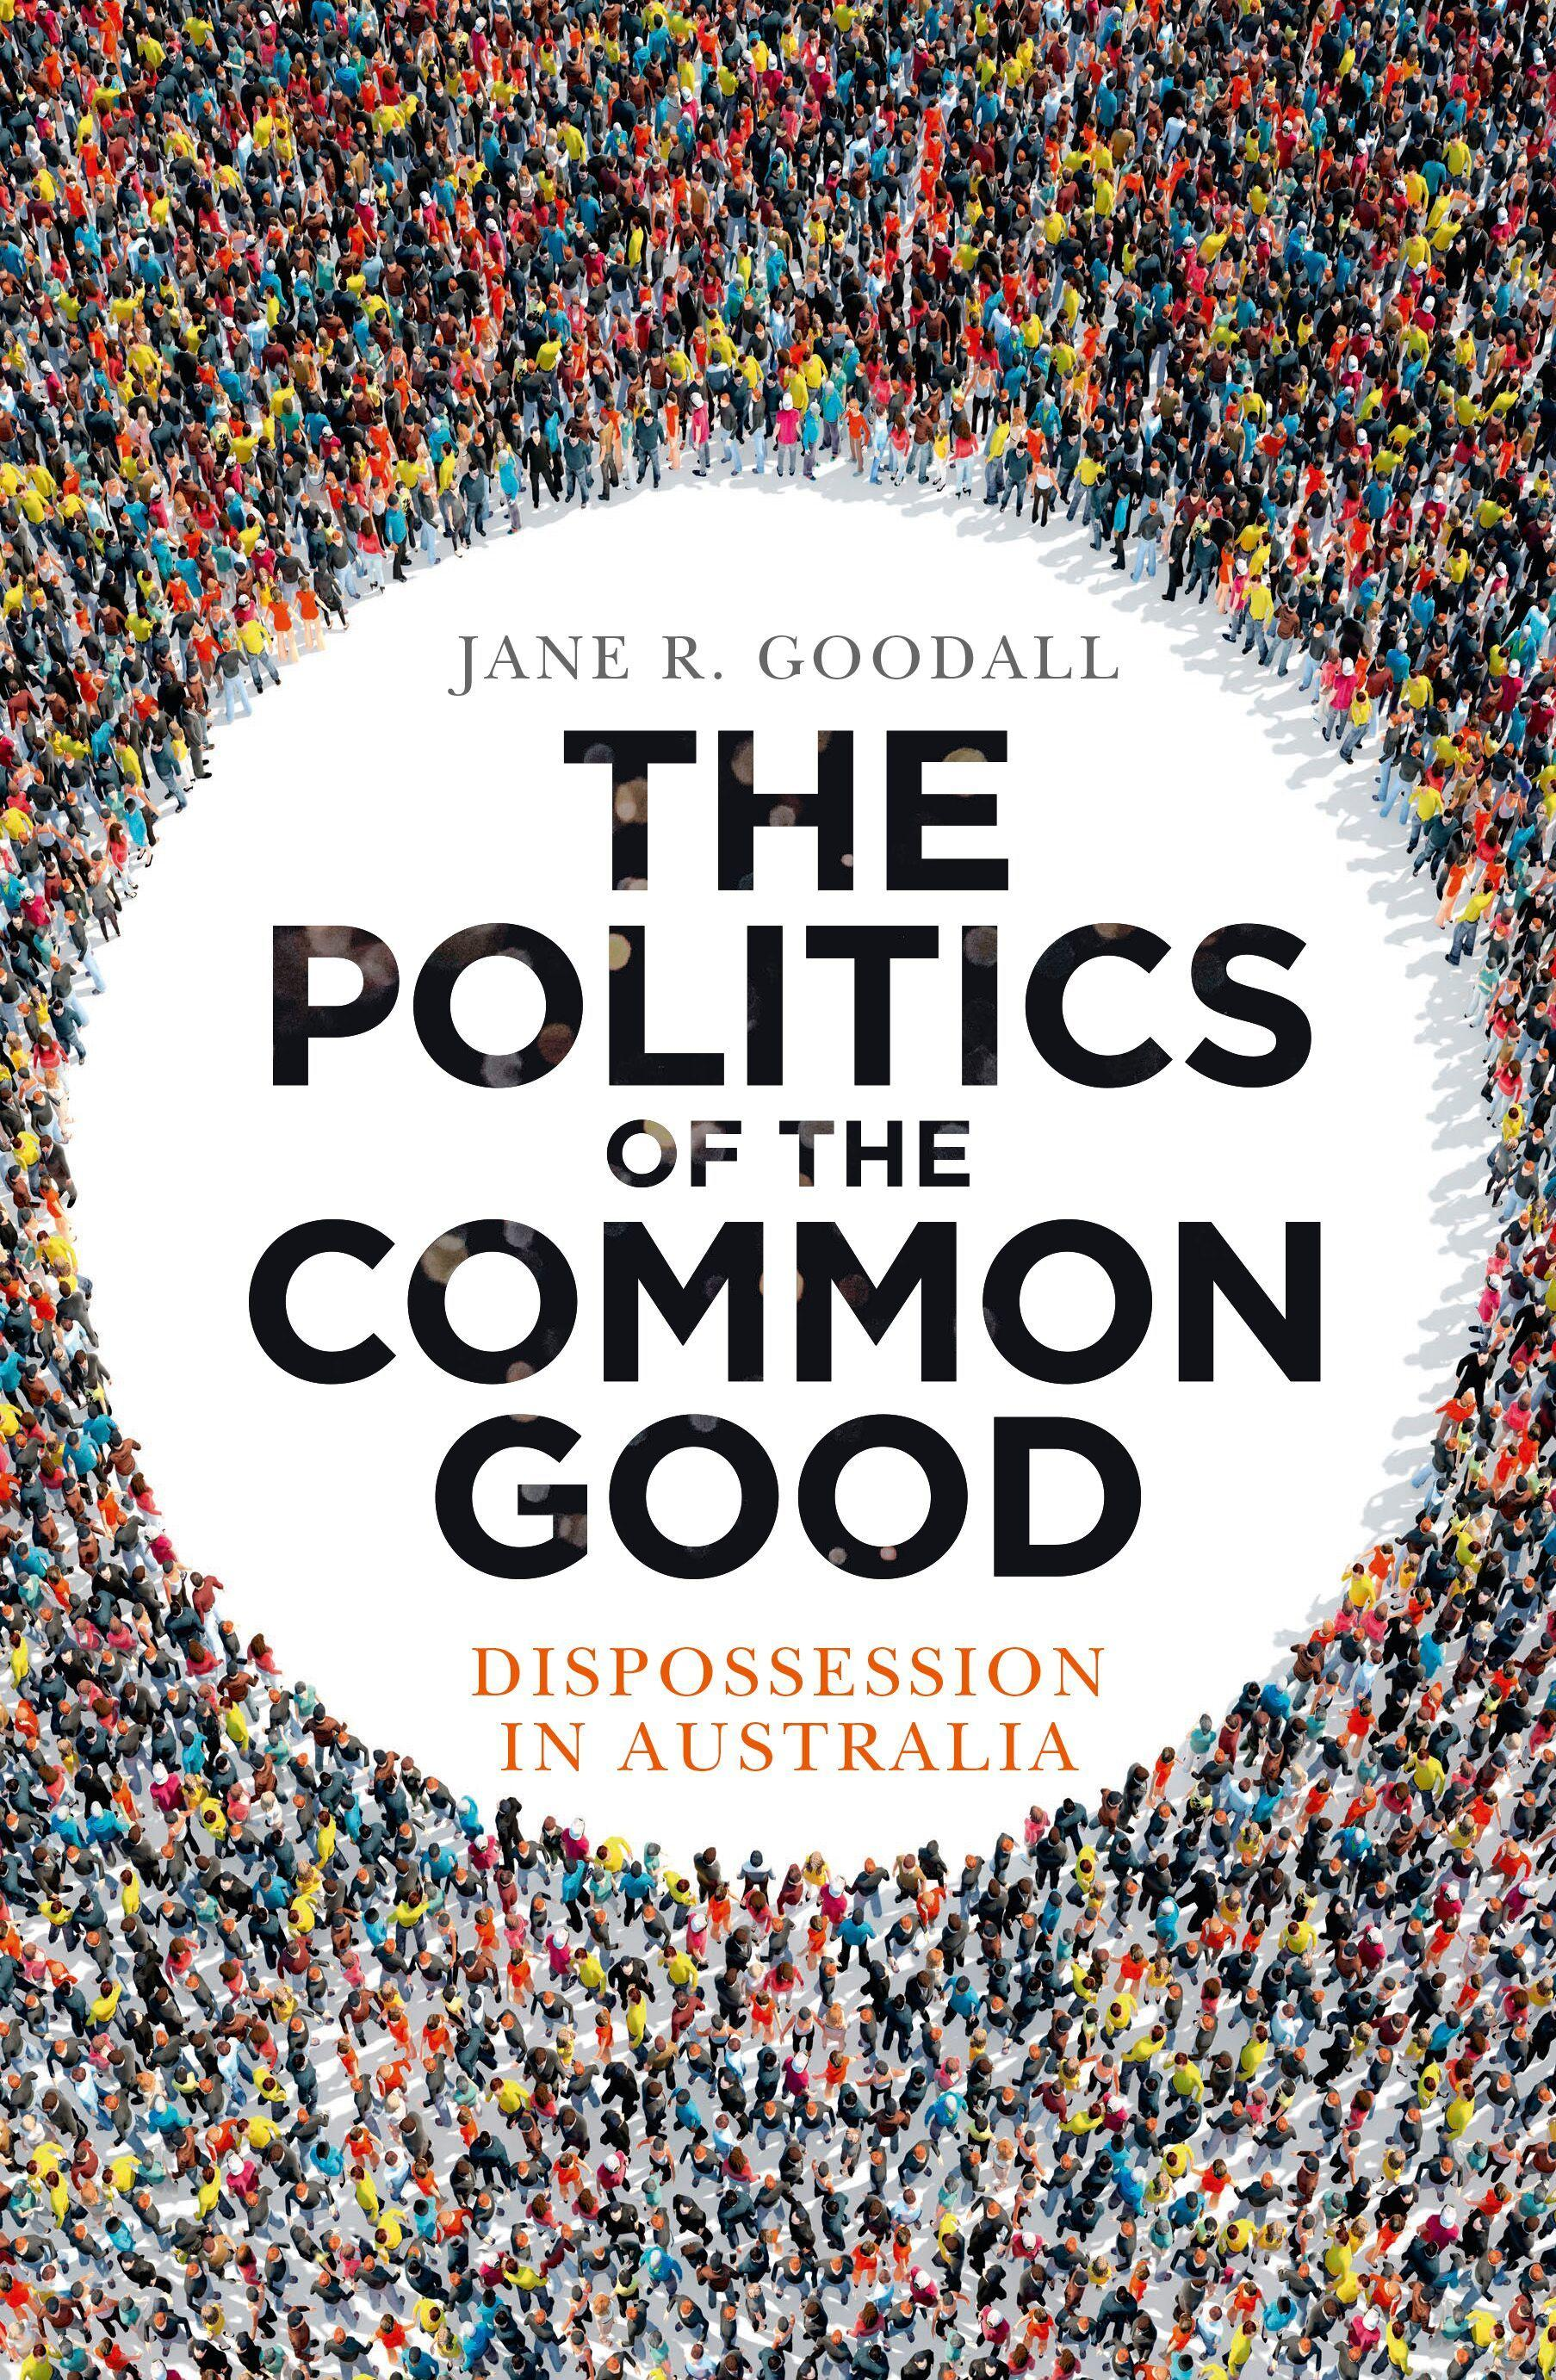 The Politics of the Common Good